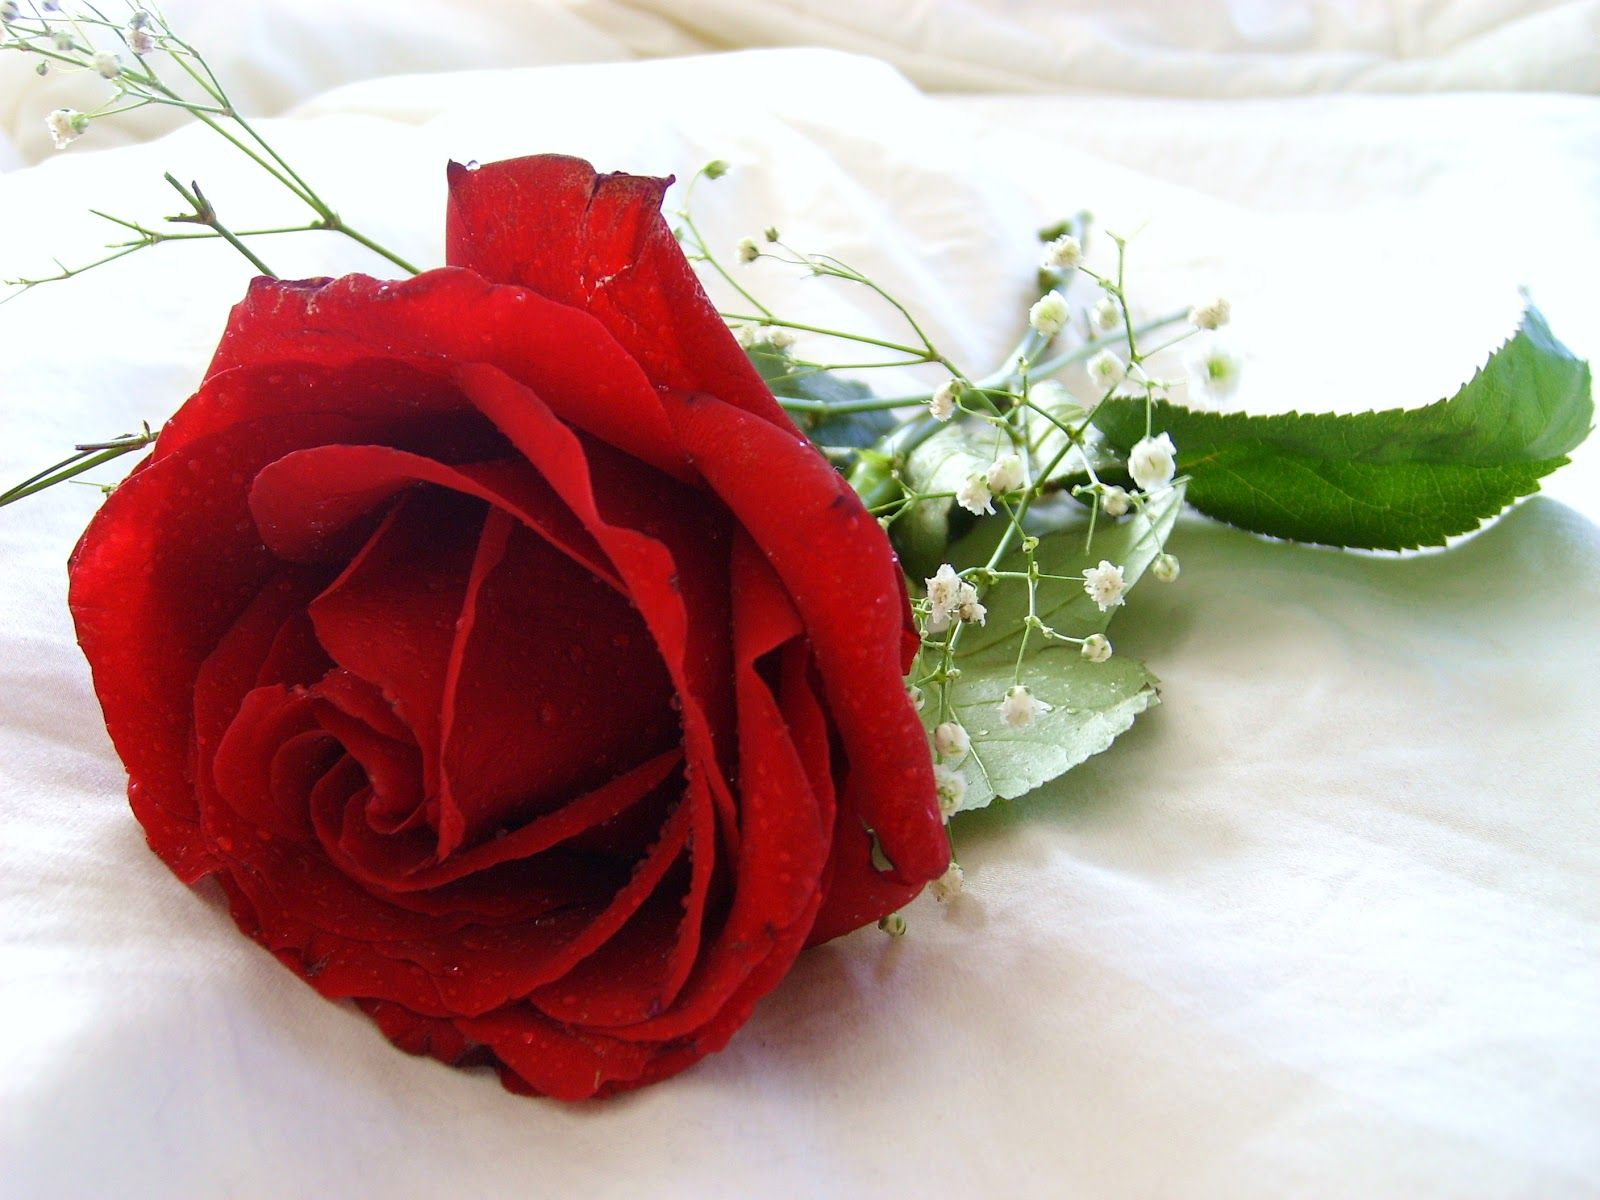 Red rose flower wallpaper beautiful flowers 2380 full hd - Red rose flower hd images ...